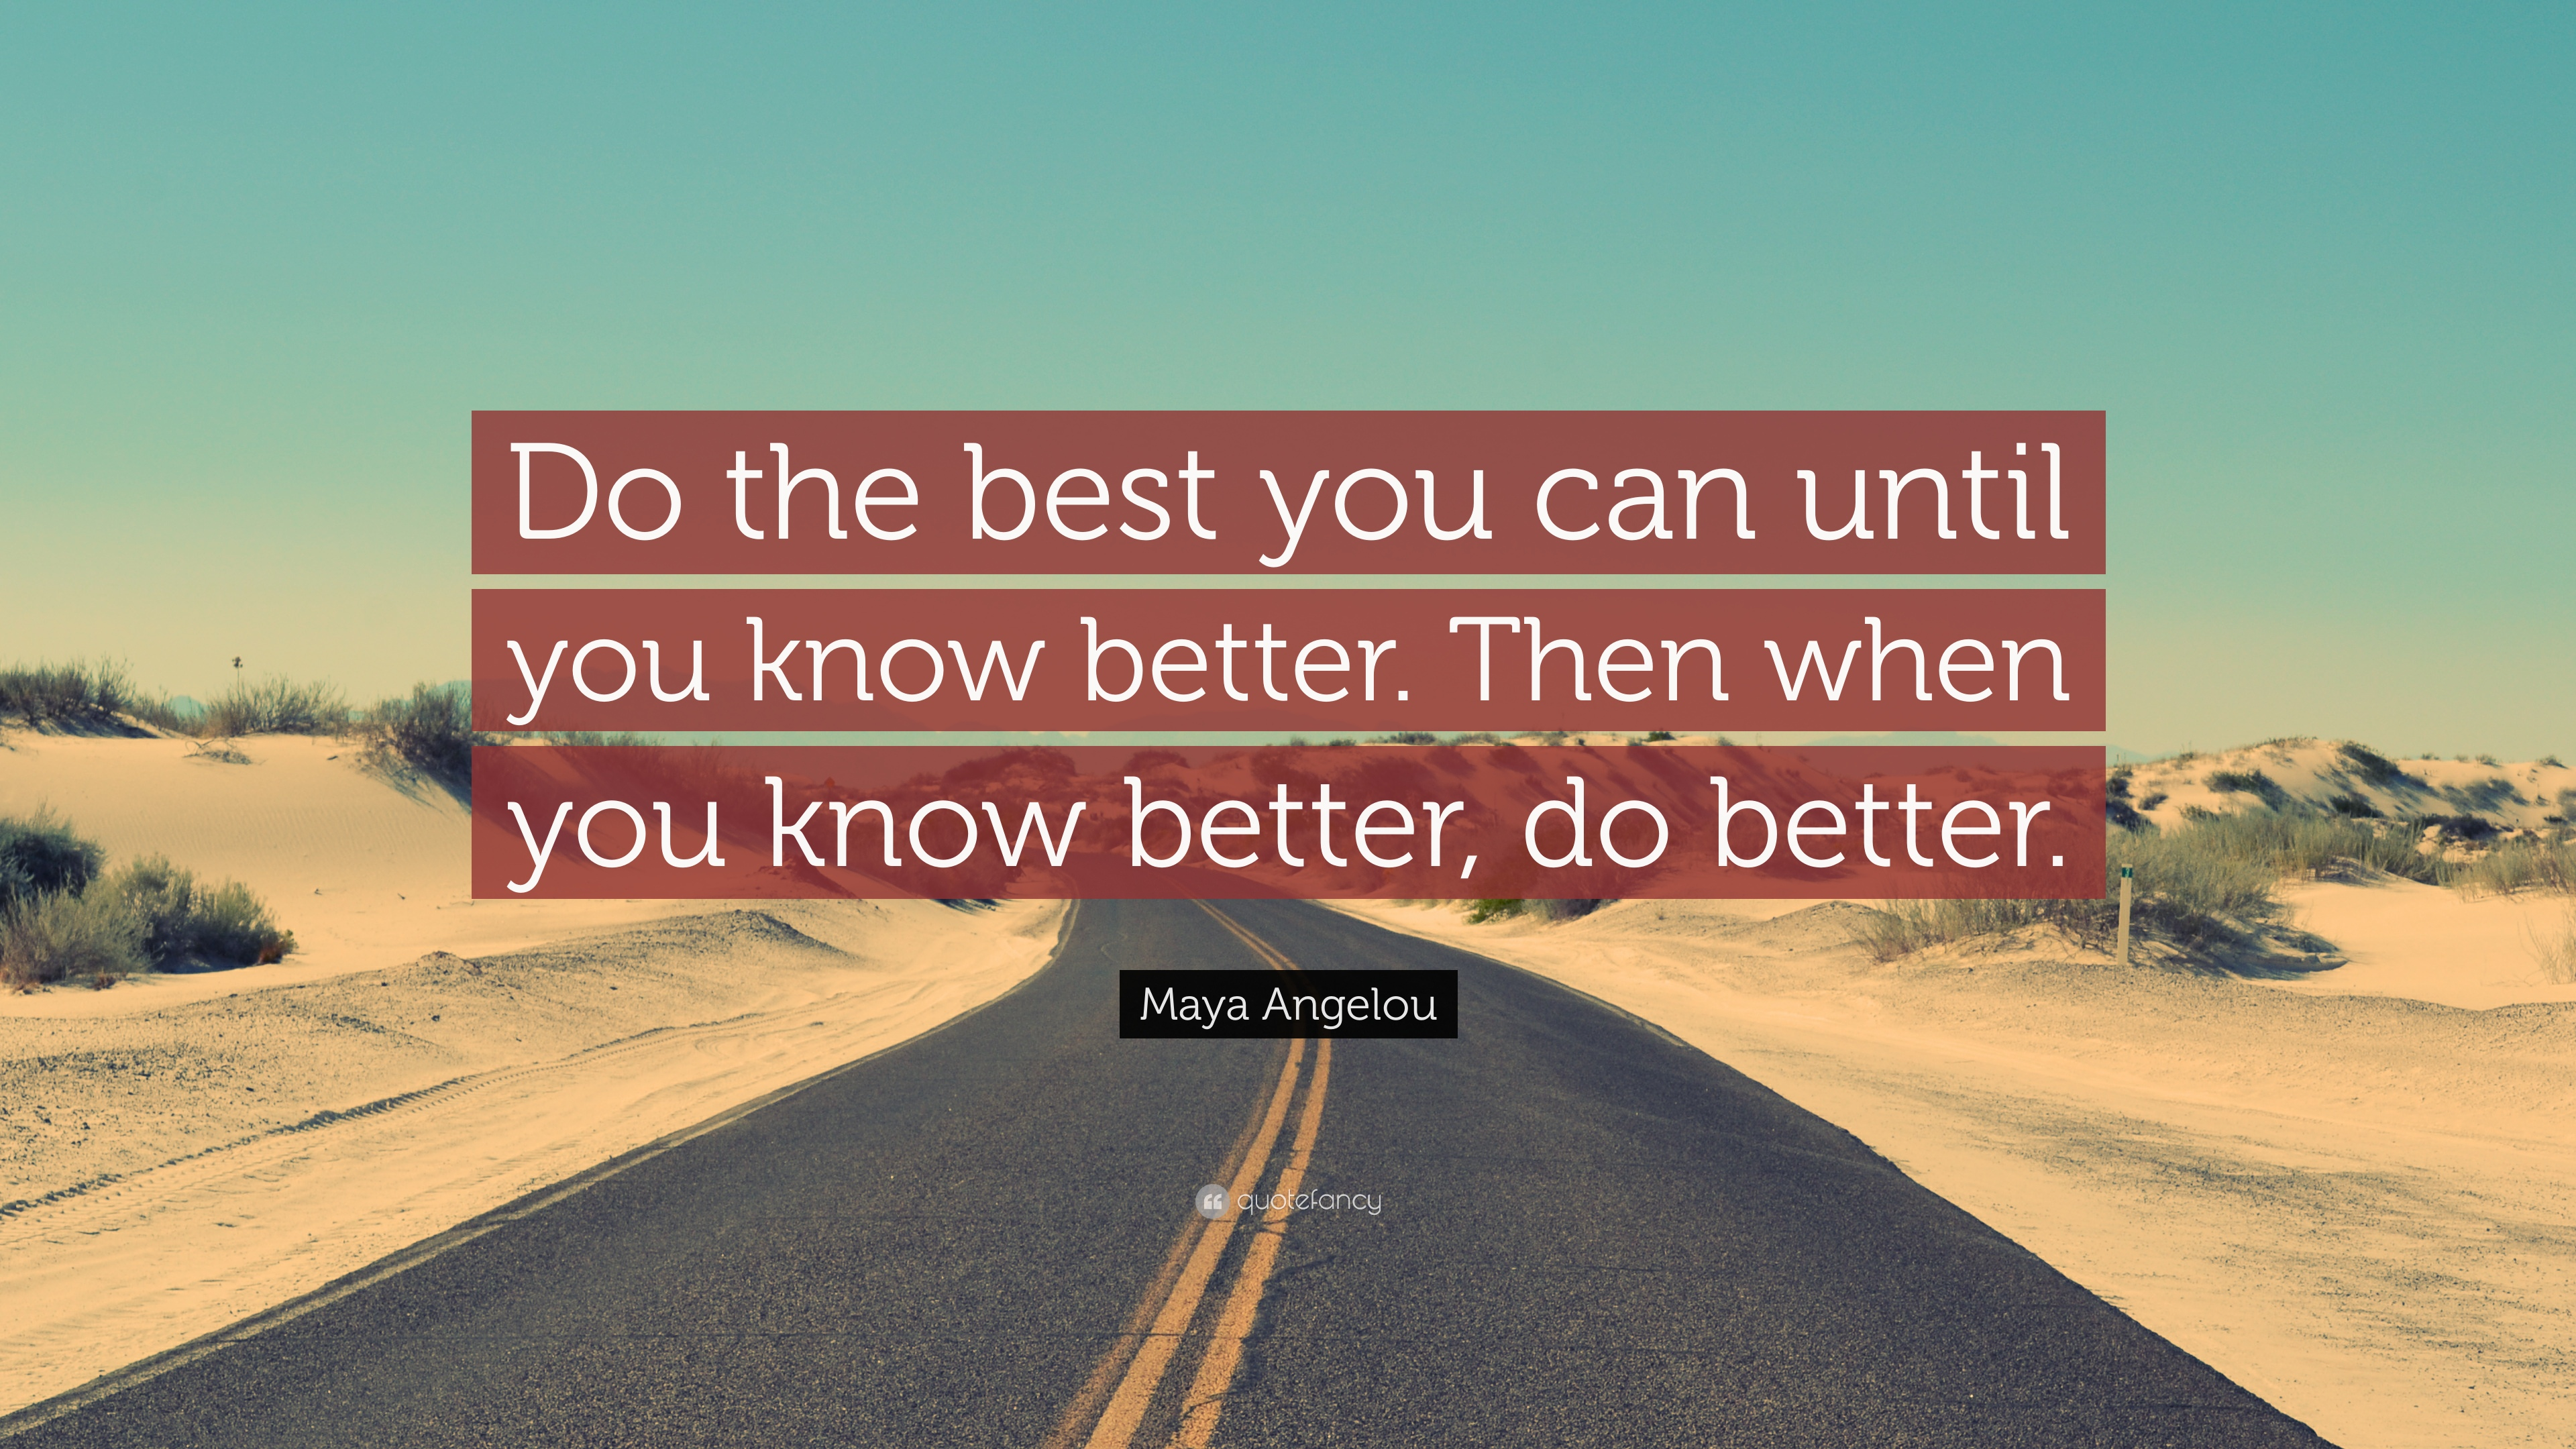 Maya Angelou Quote Do The Best You Can Until You Know Better Then